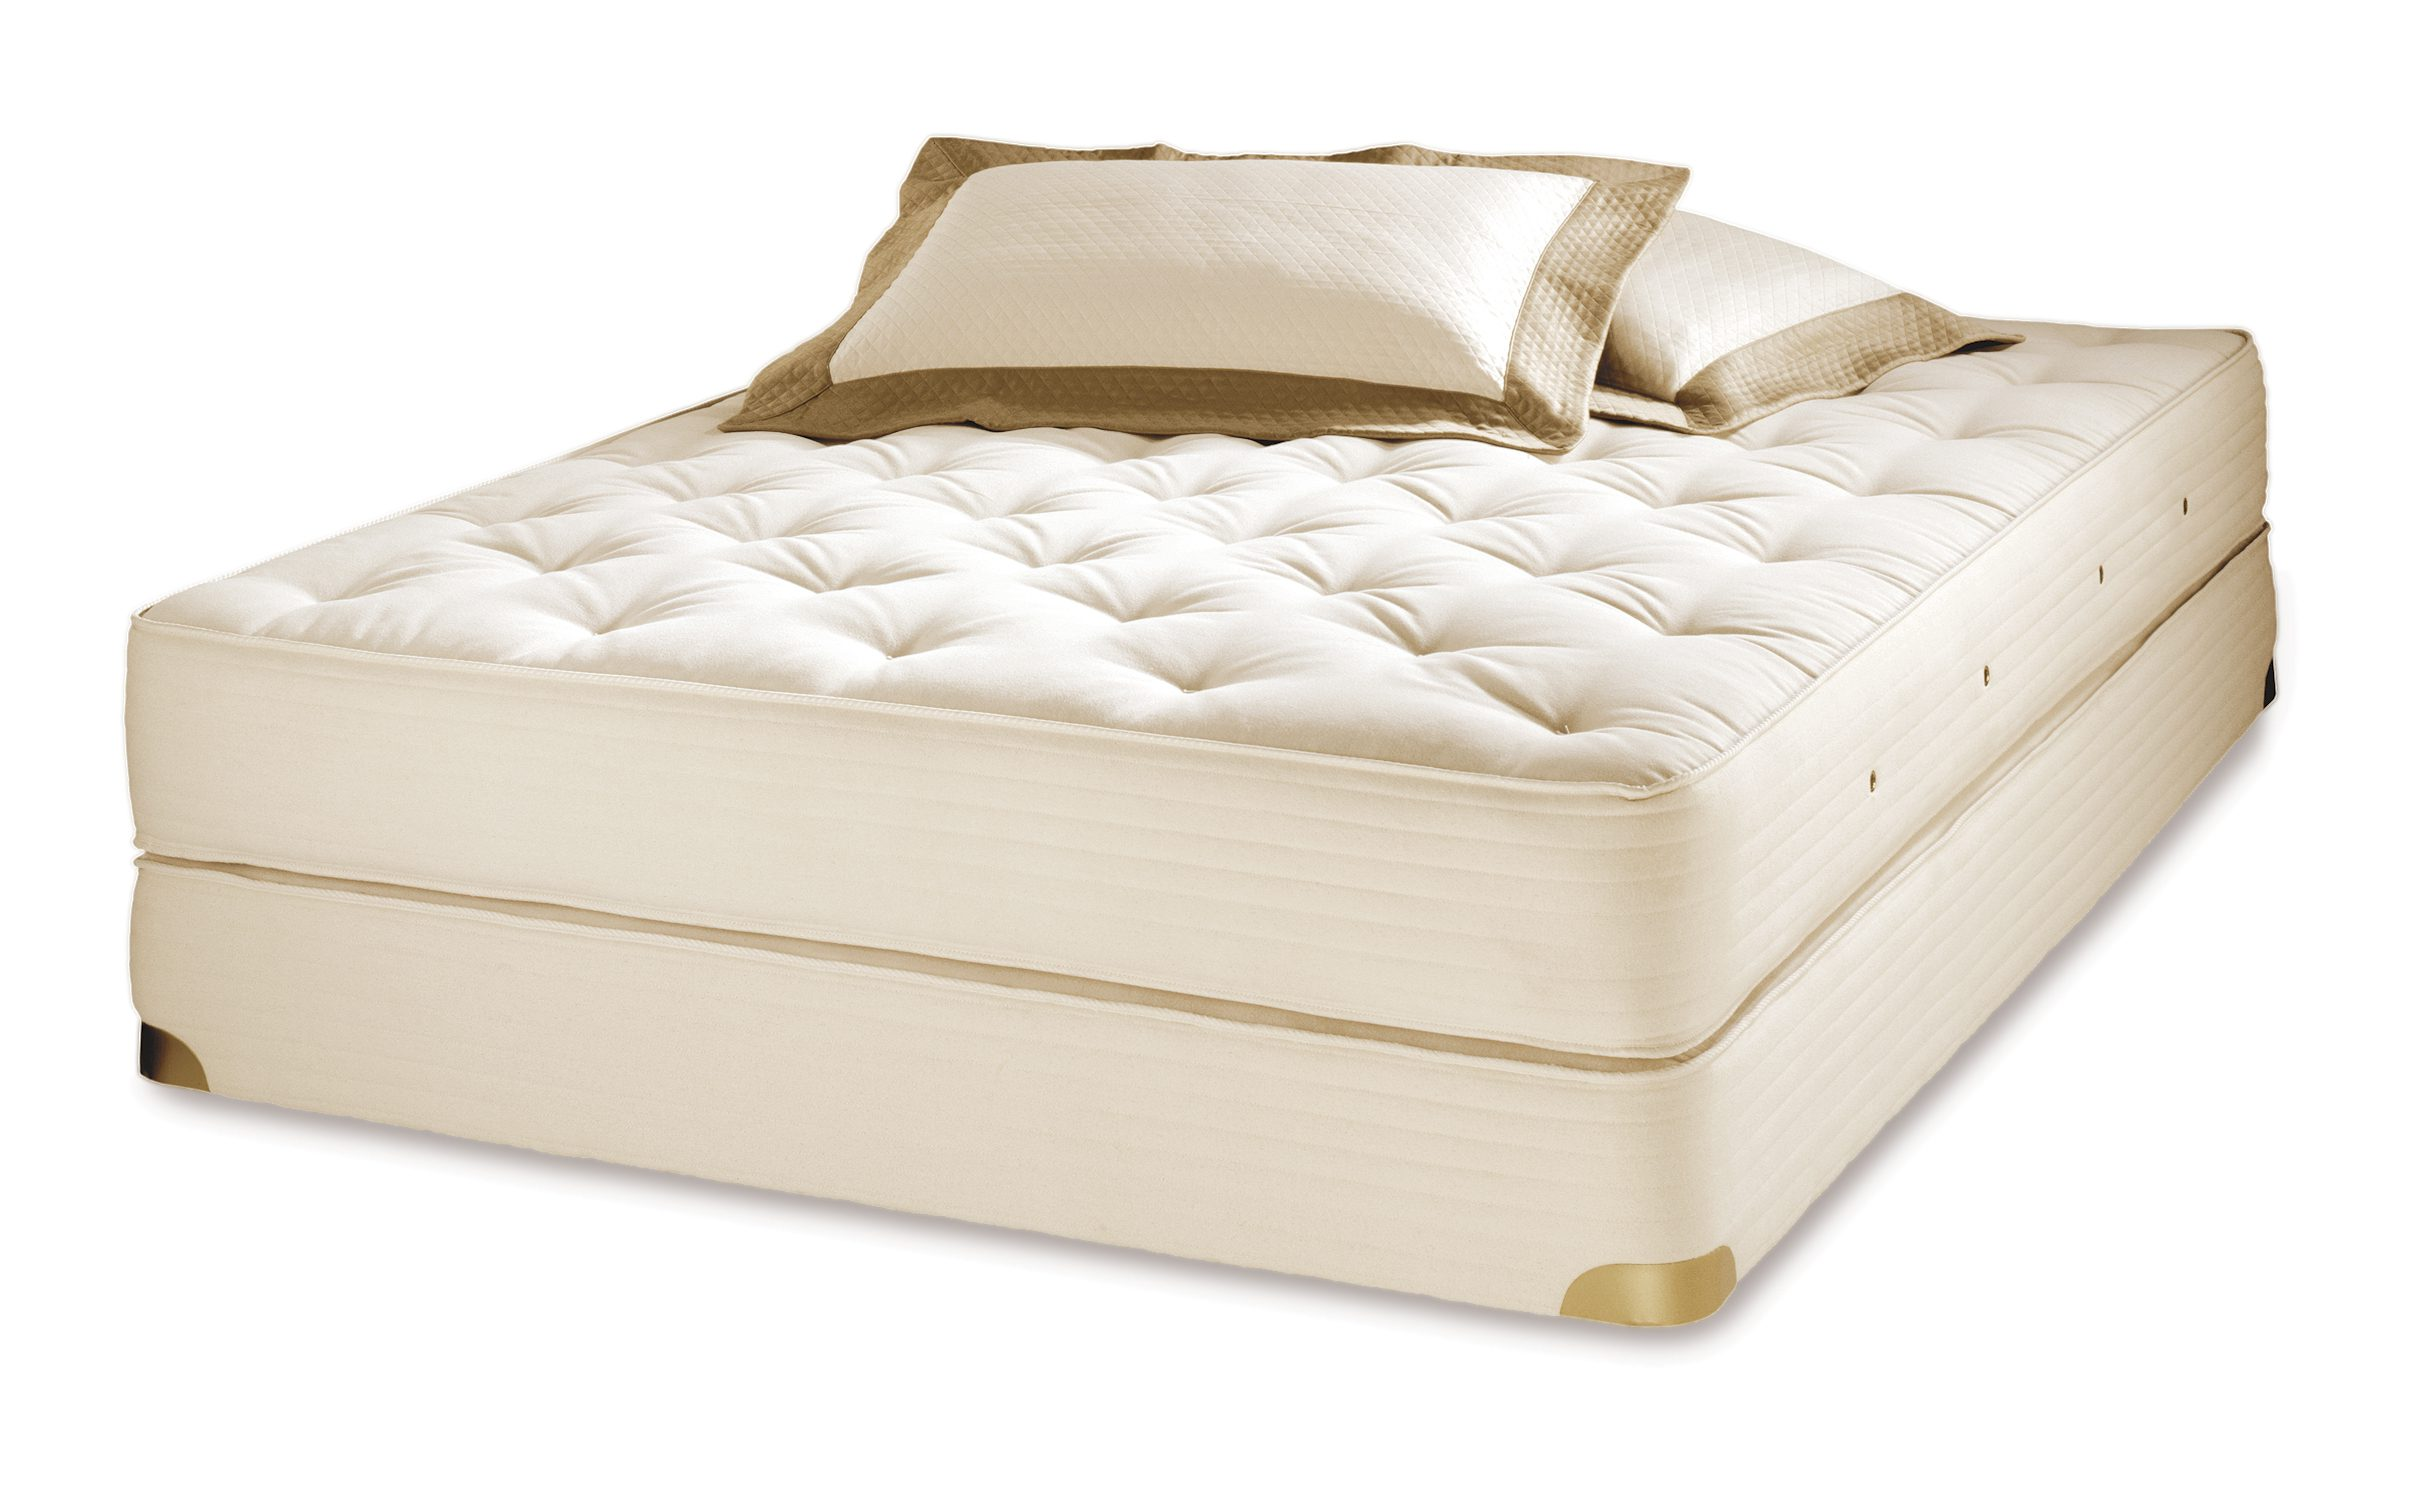 Firmest Mattresses On The Market Royal Pedic All Cotton Sleep Dream